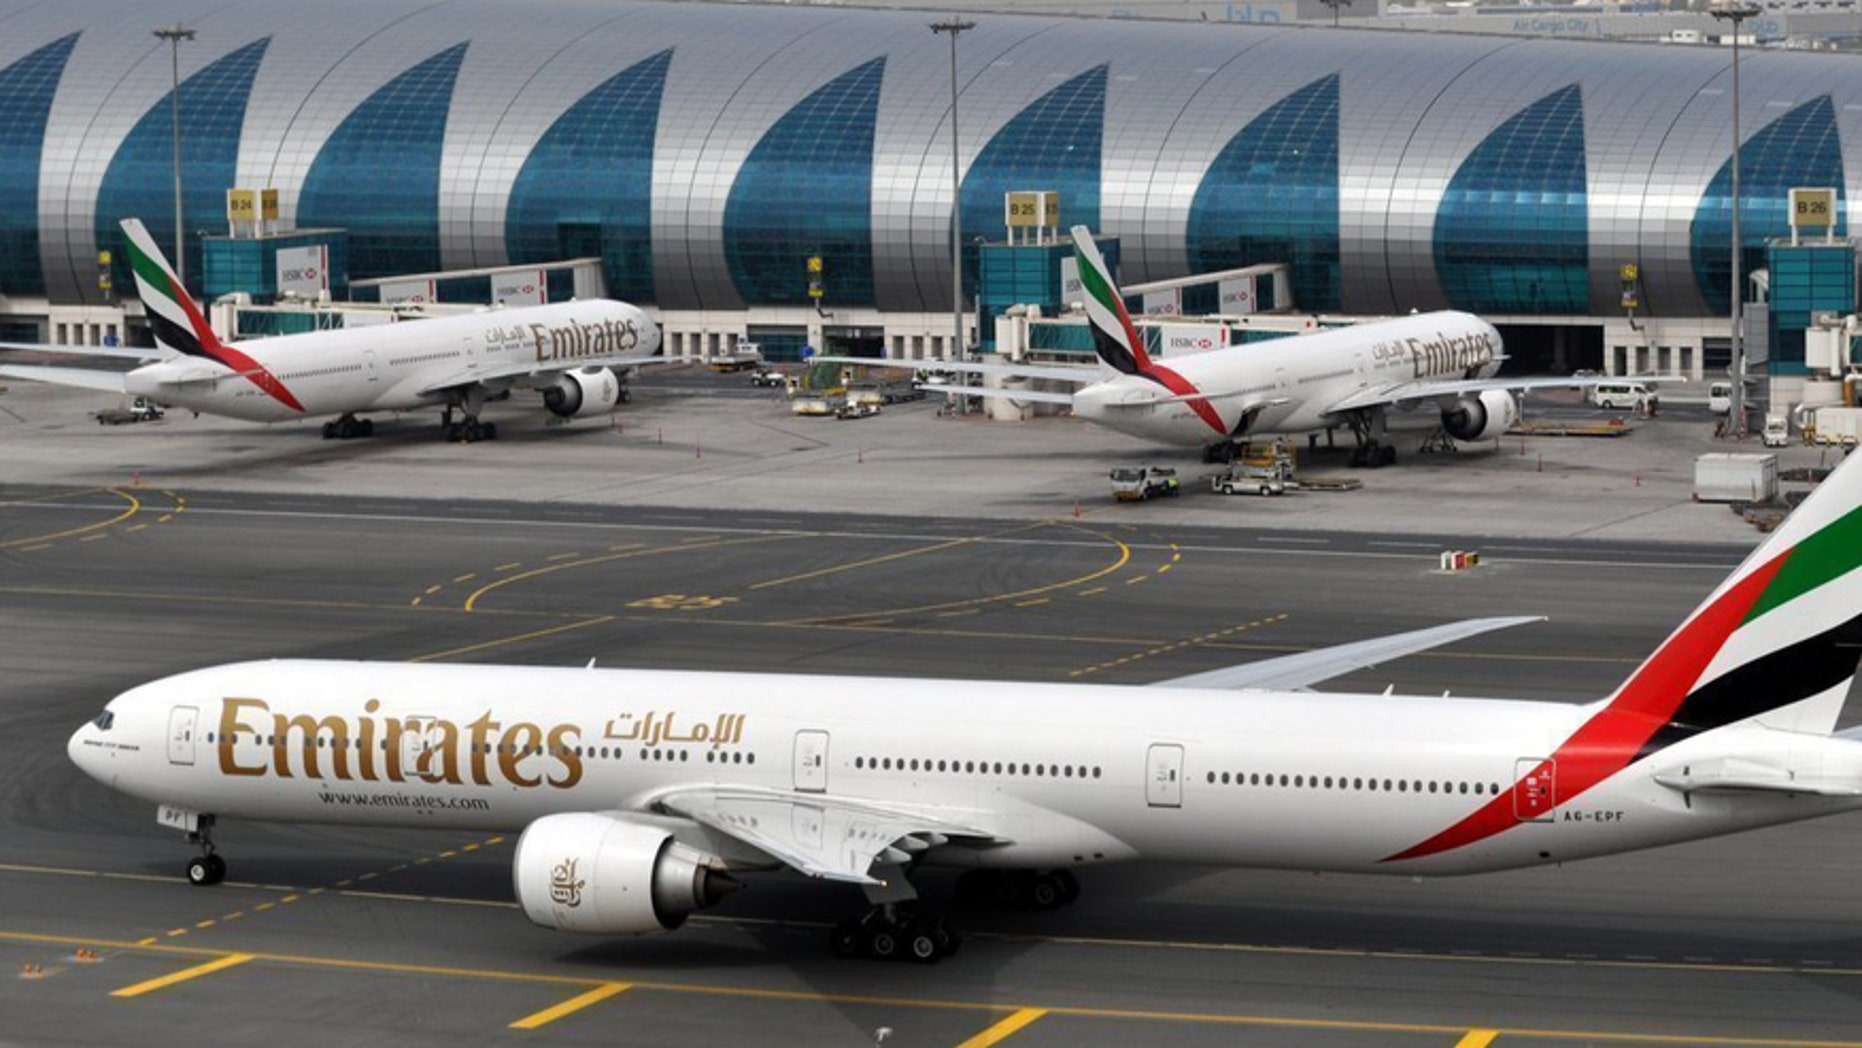 FILE- In this Wednesday, March 22, 2017 file photo, an Emirates plane taxis to a gate at Dubai International Airport at Dubai International Airport in Dubai, United Arab Emirates. The Middle East's biggest airline says it is reducing flights to the United States because of a drop in demand caused by tougher U.S. security measures and attempts by the Trump administration to ban travelers from a number of Muslim-majority nations. (AP Photo/Adam Schreck, File)